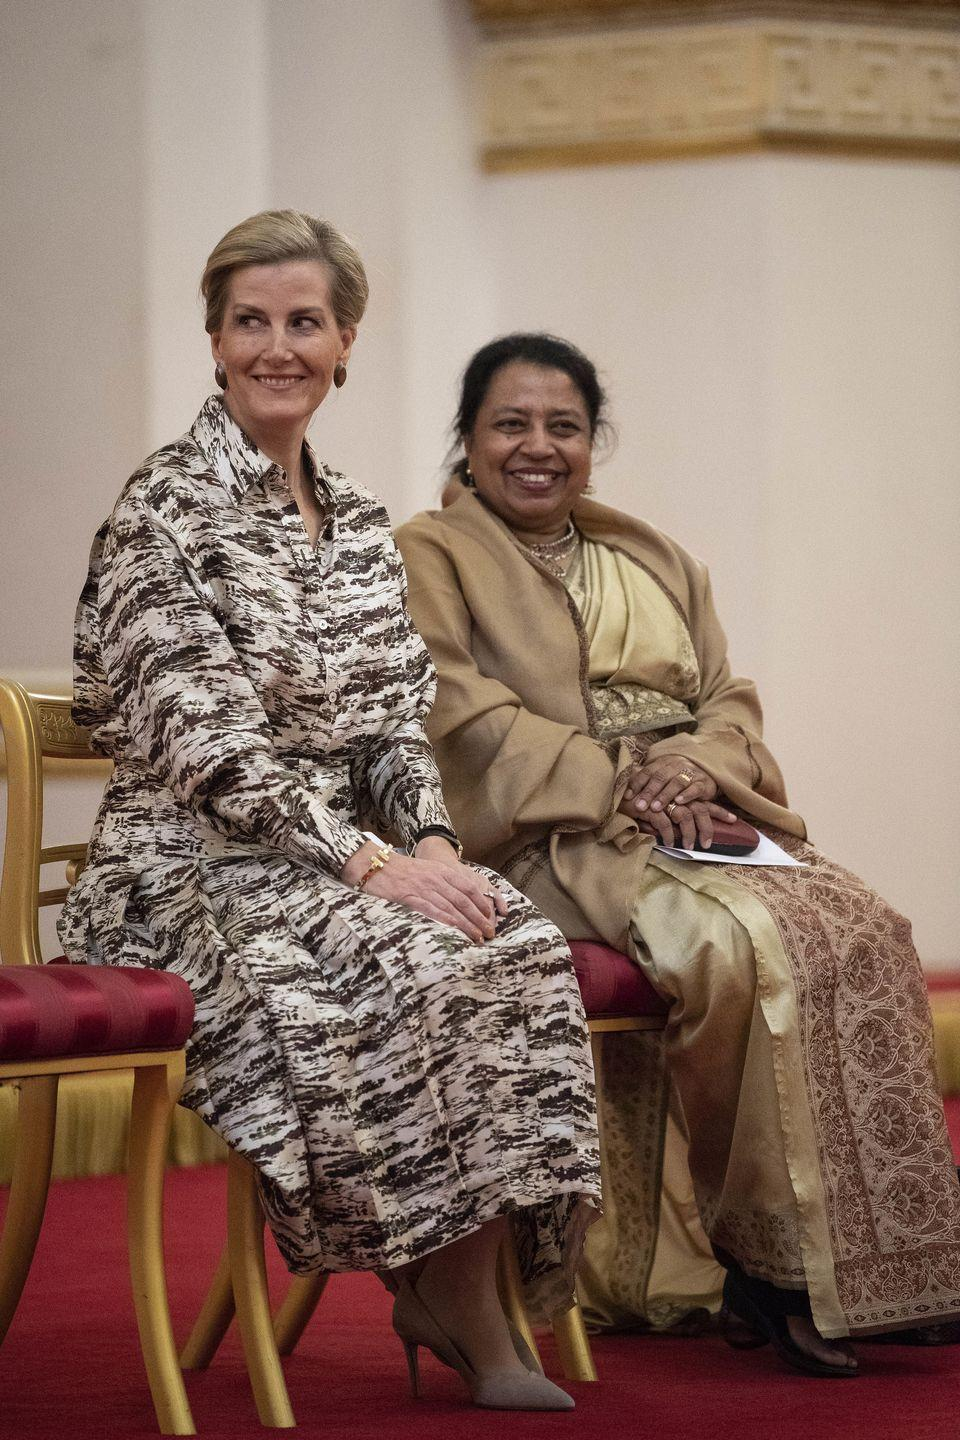 <p>The Countess of Wessex changed into a long-sleeve brown and white patterned dress (although she continued to wear the same earrings and heels) to host a reception at Buckingham Palace in honor of International Women's Day. </p>